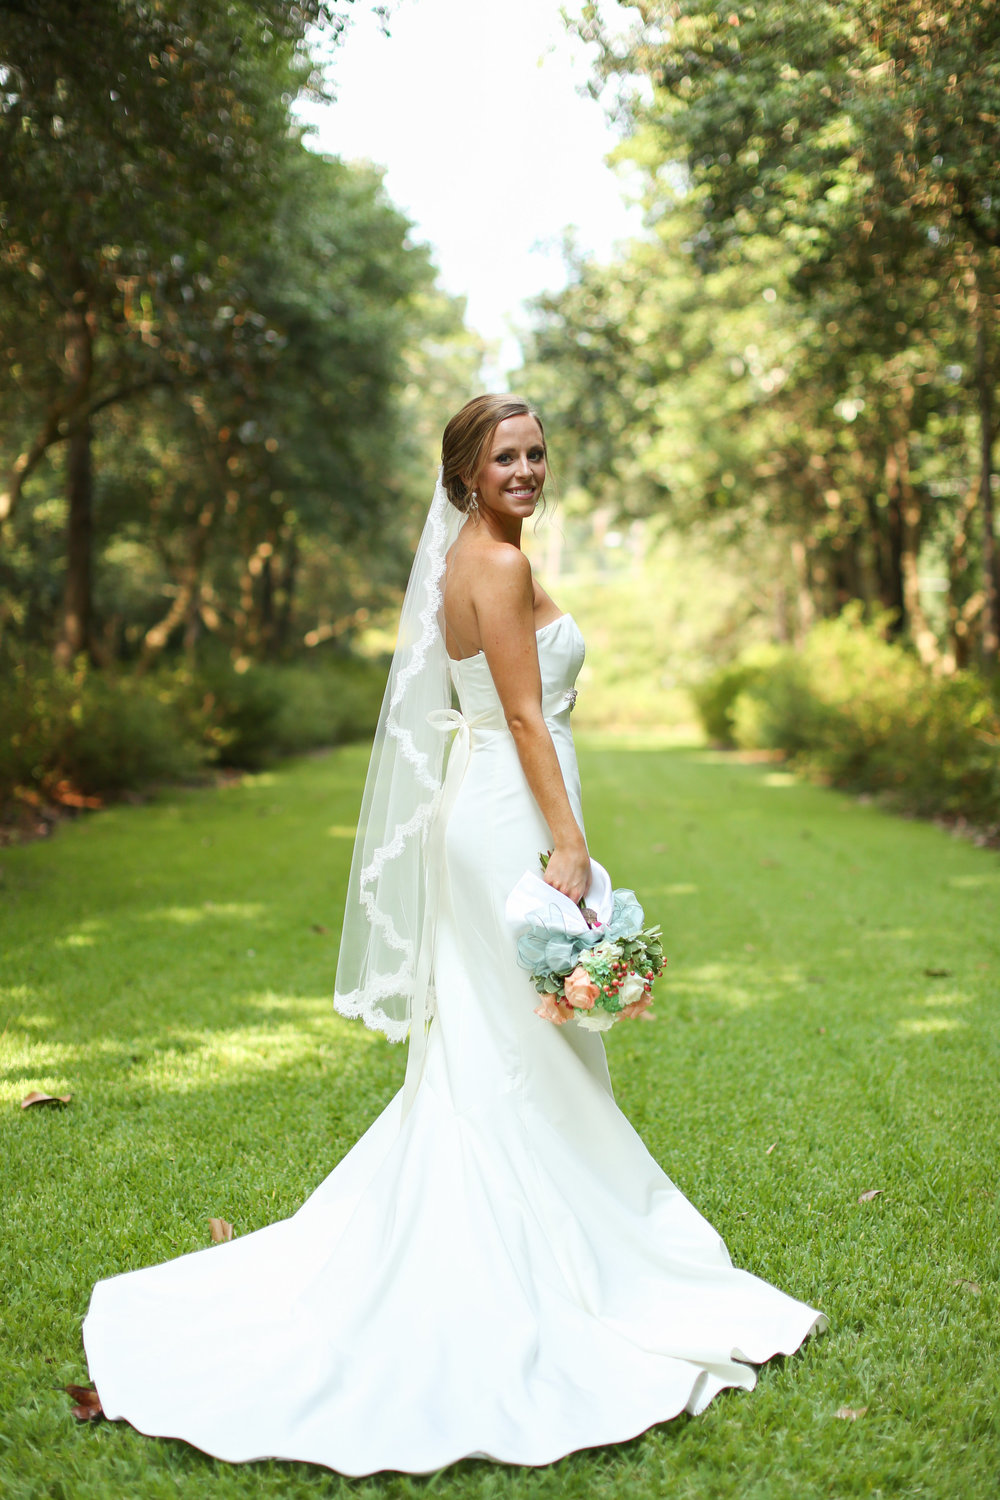 finnegan-photography-ivory-and-beau-bridal-boutique-nicole-miller-dakota-jaclyn-jordan-anne-veil-savannah-bridal-boutique-savannah-wedding-dresses-savannah-weddings-statesboro-wedding-barn-wedding-savannah-bridal-georgia-bridal-boutique-10.jpg